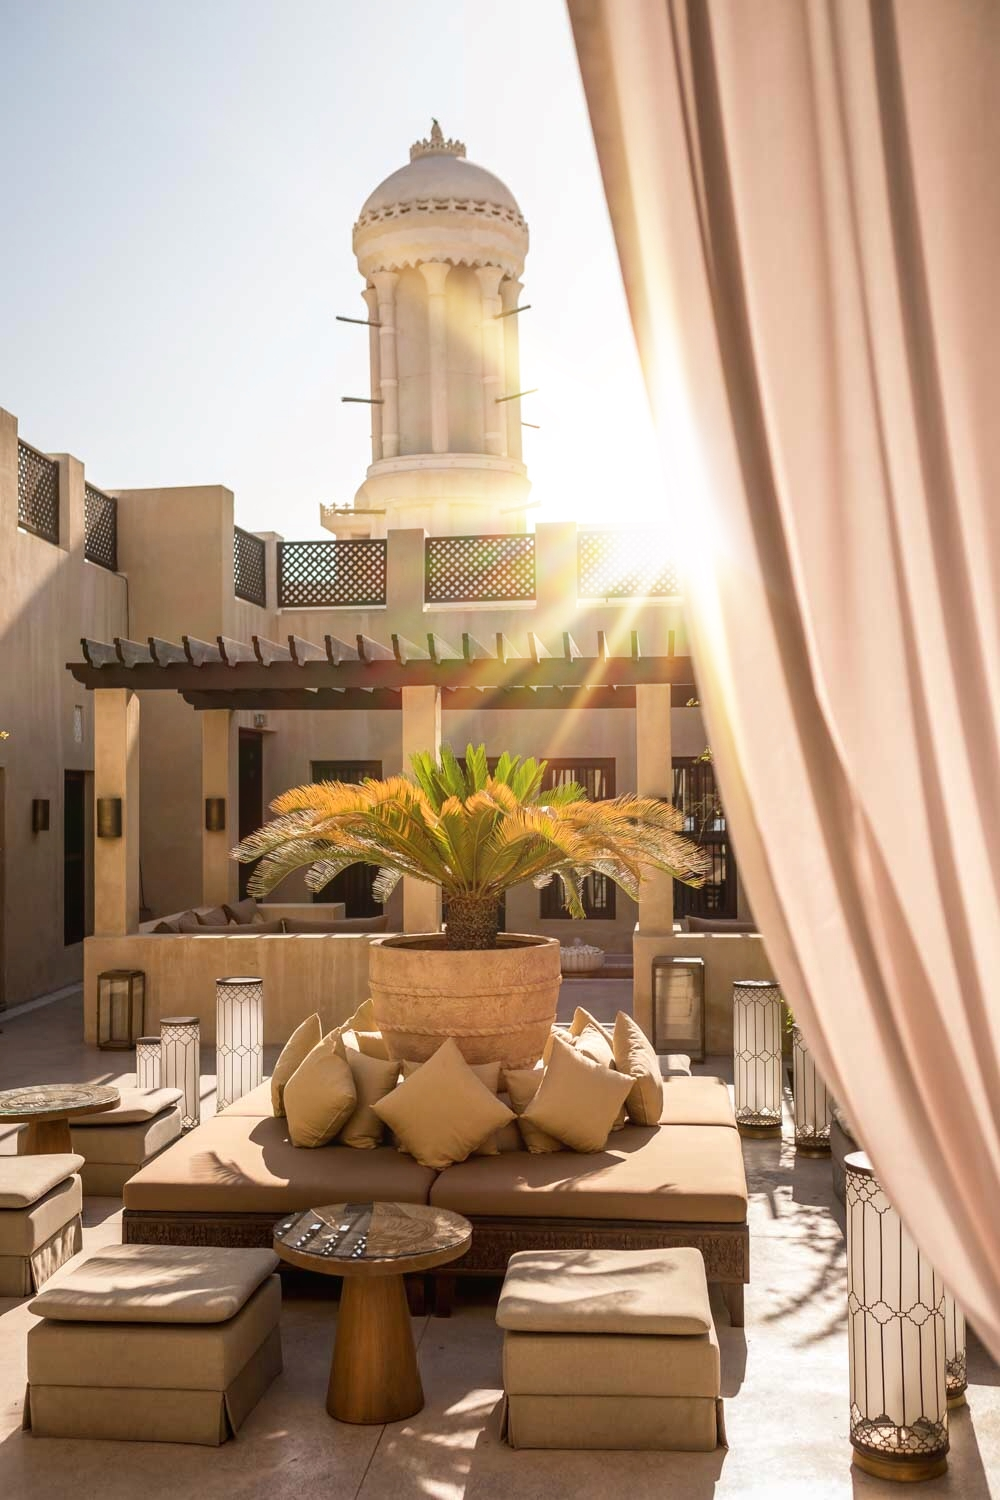 Best places to visit in Heart of Sharjah. The Chedi Al Bait hotel